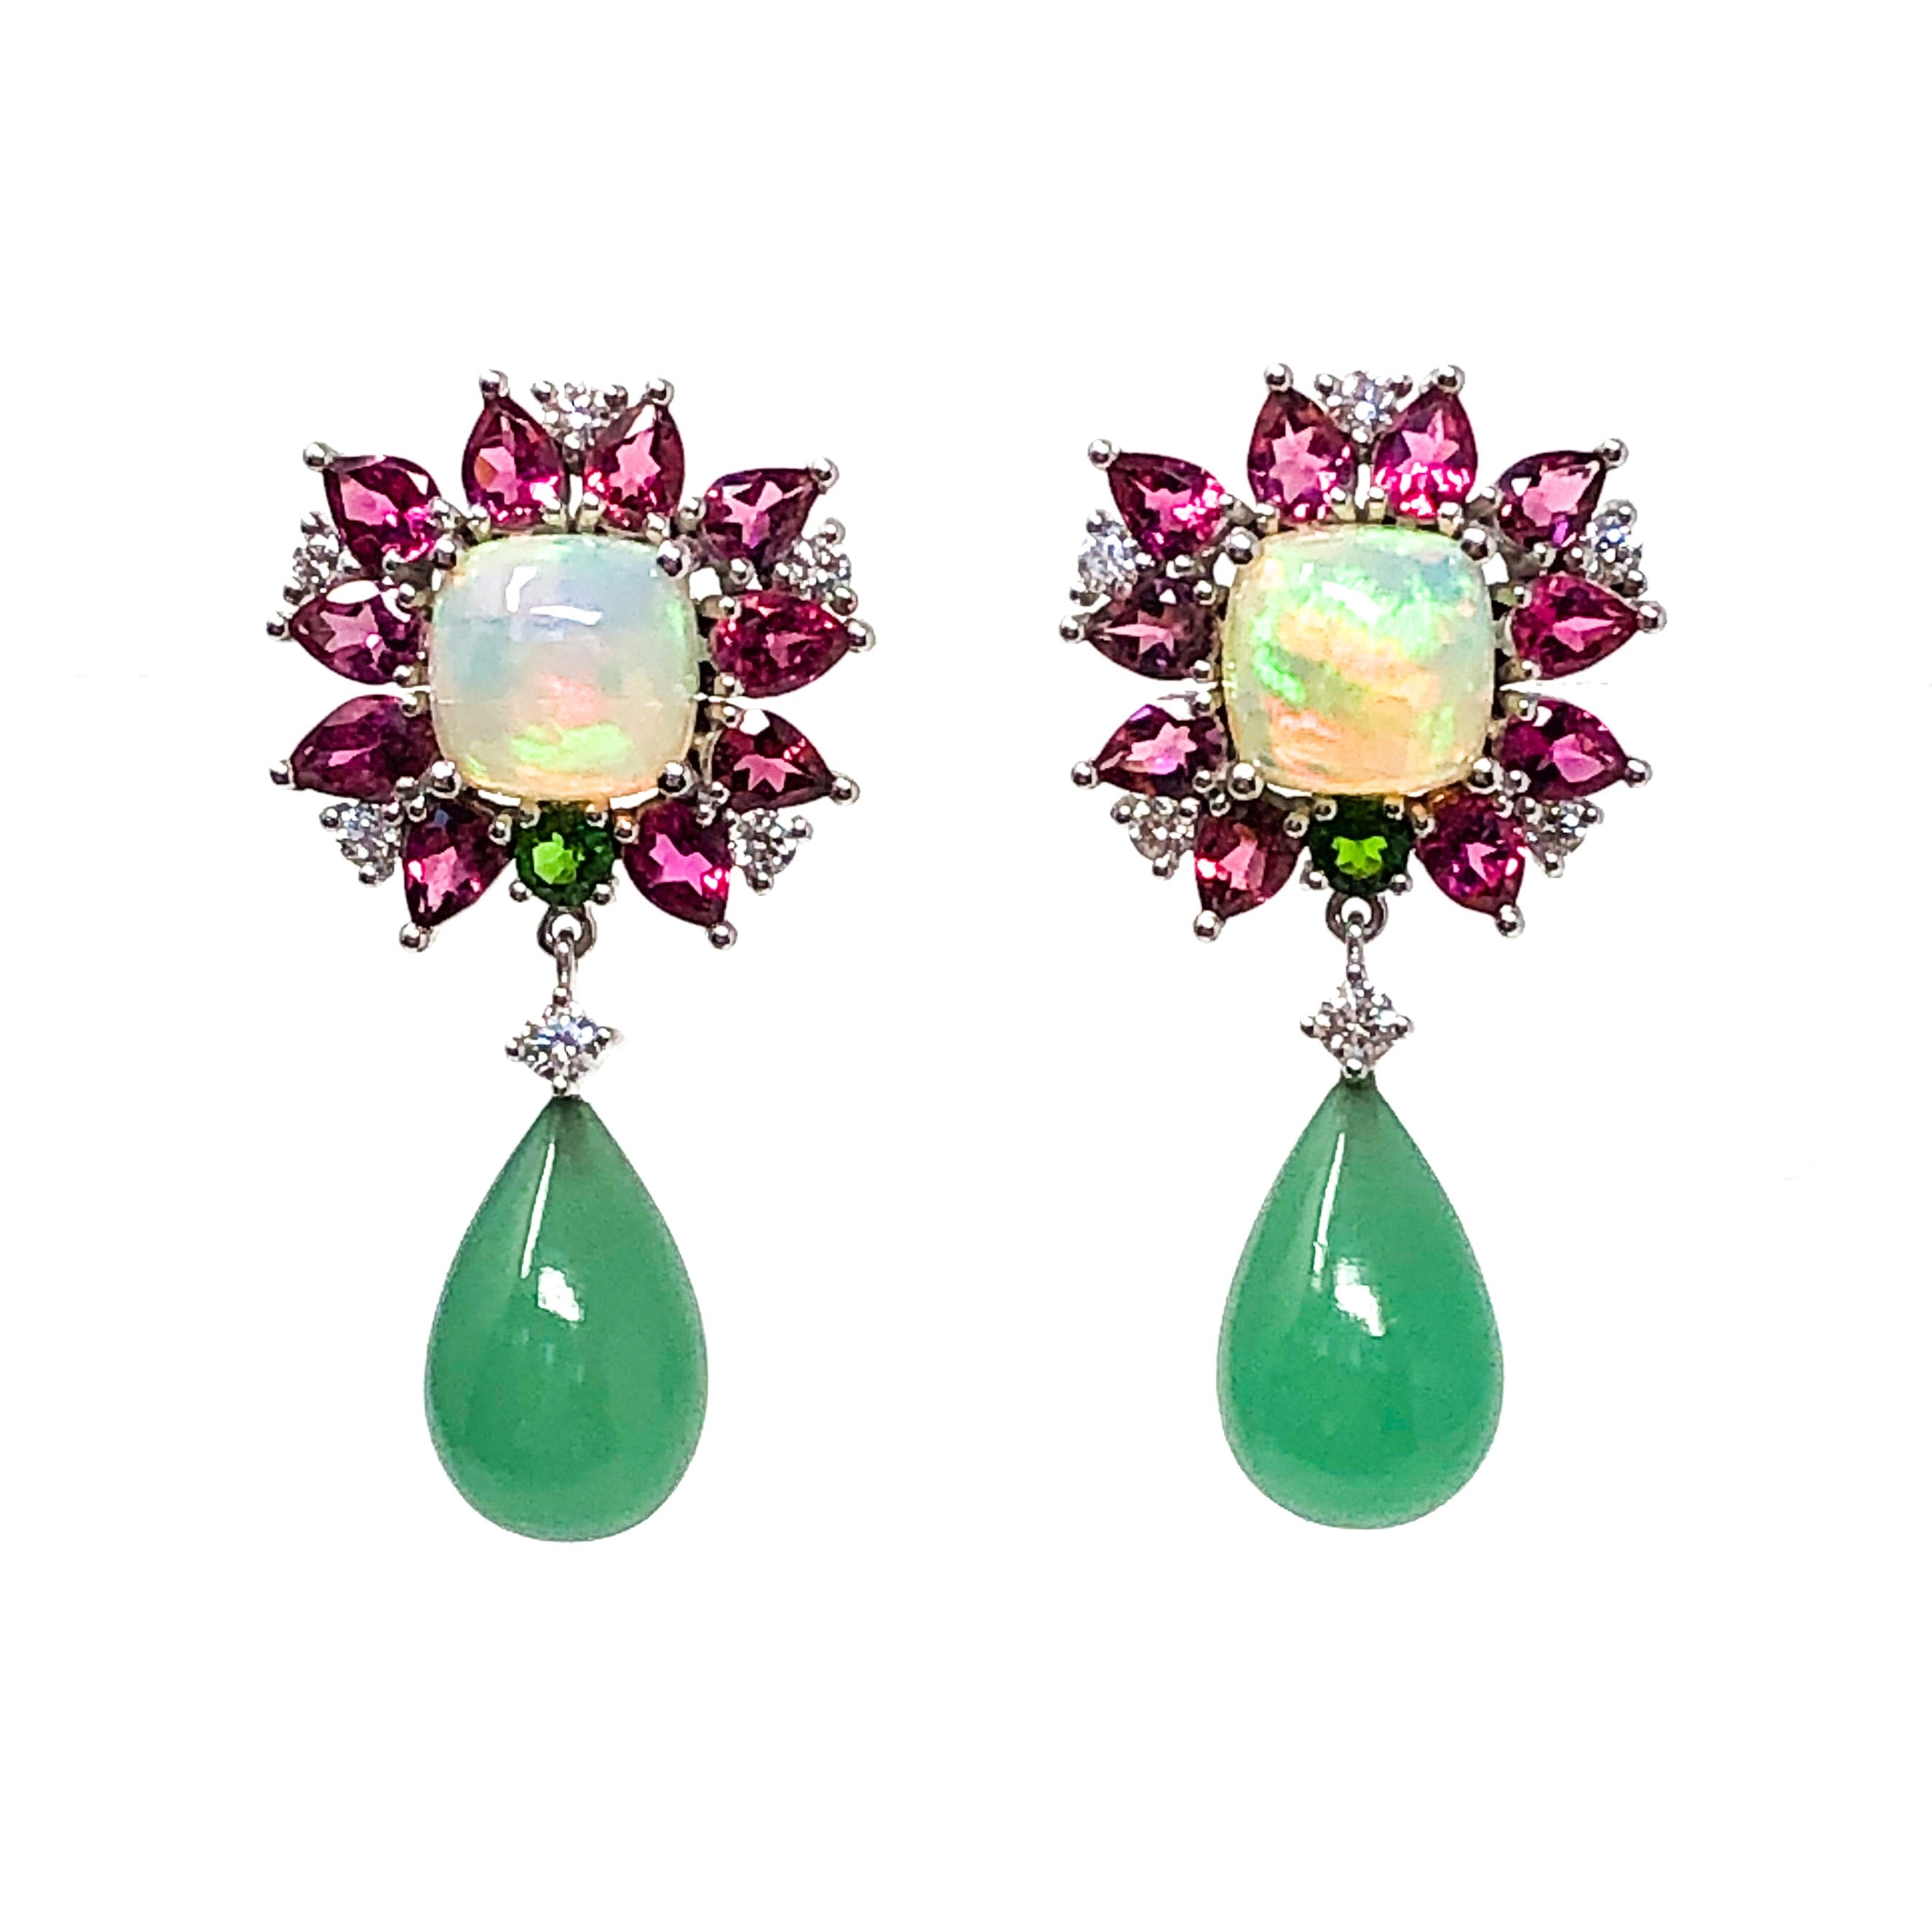 Opal, Pink Tourmaline, and Chrysoprase Earrings